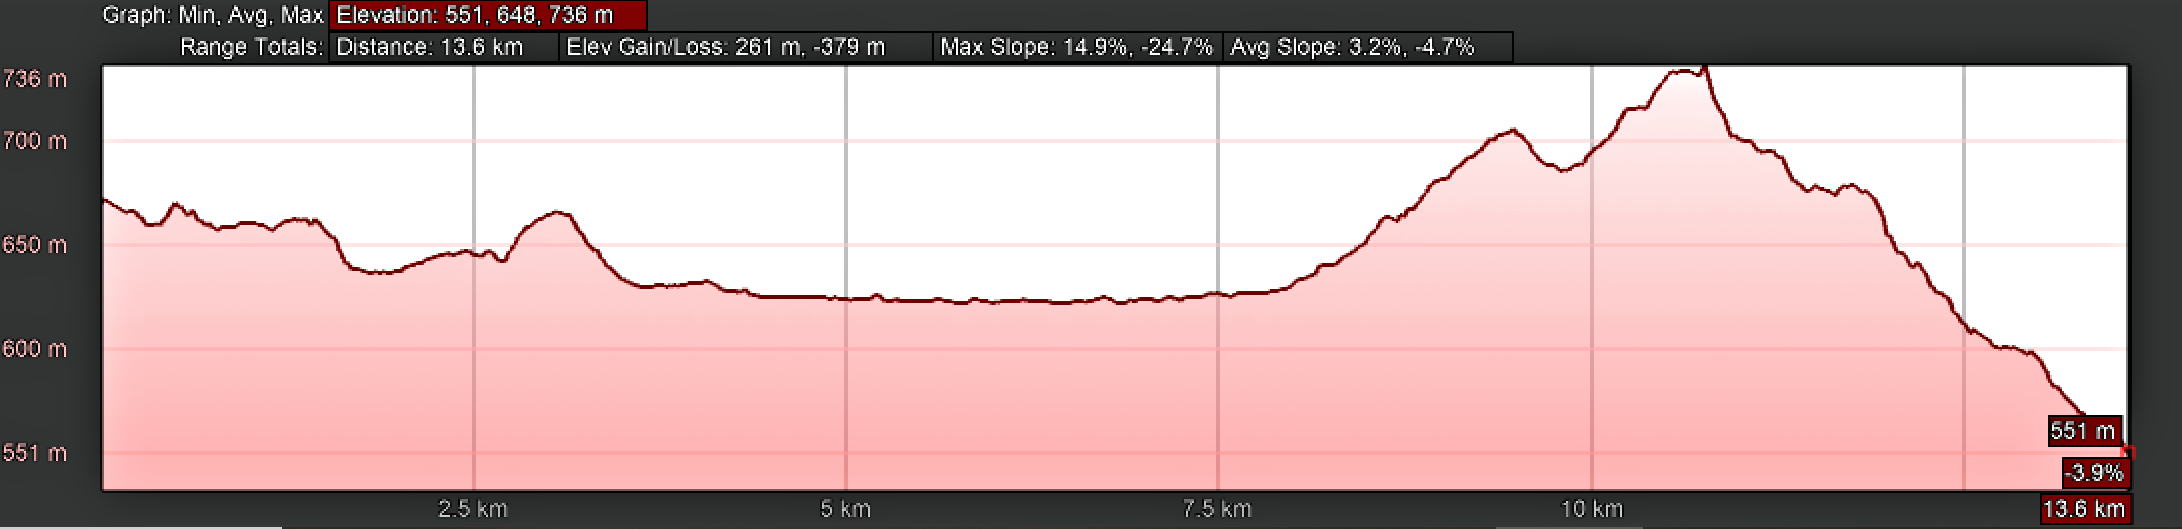 Elevation Profile, Vilar de Barrio to Xunqueira de Ambía